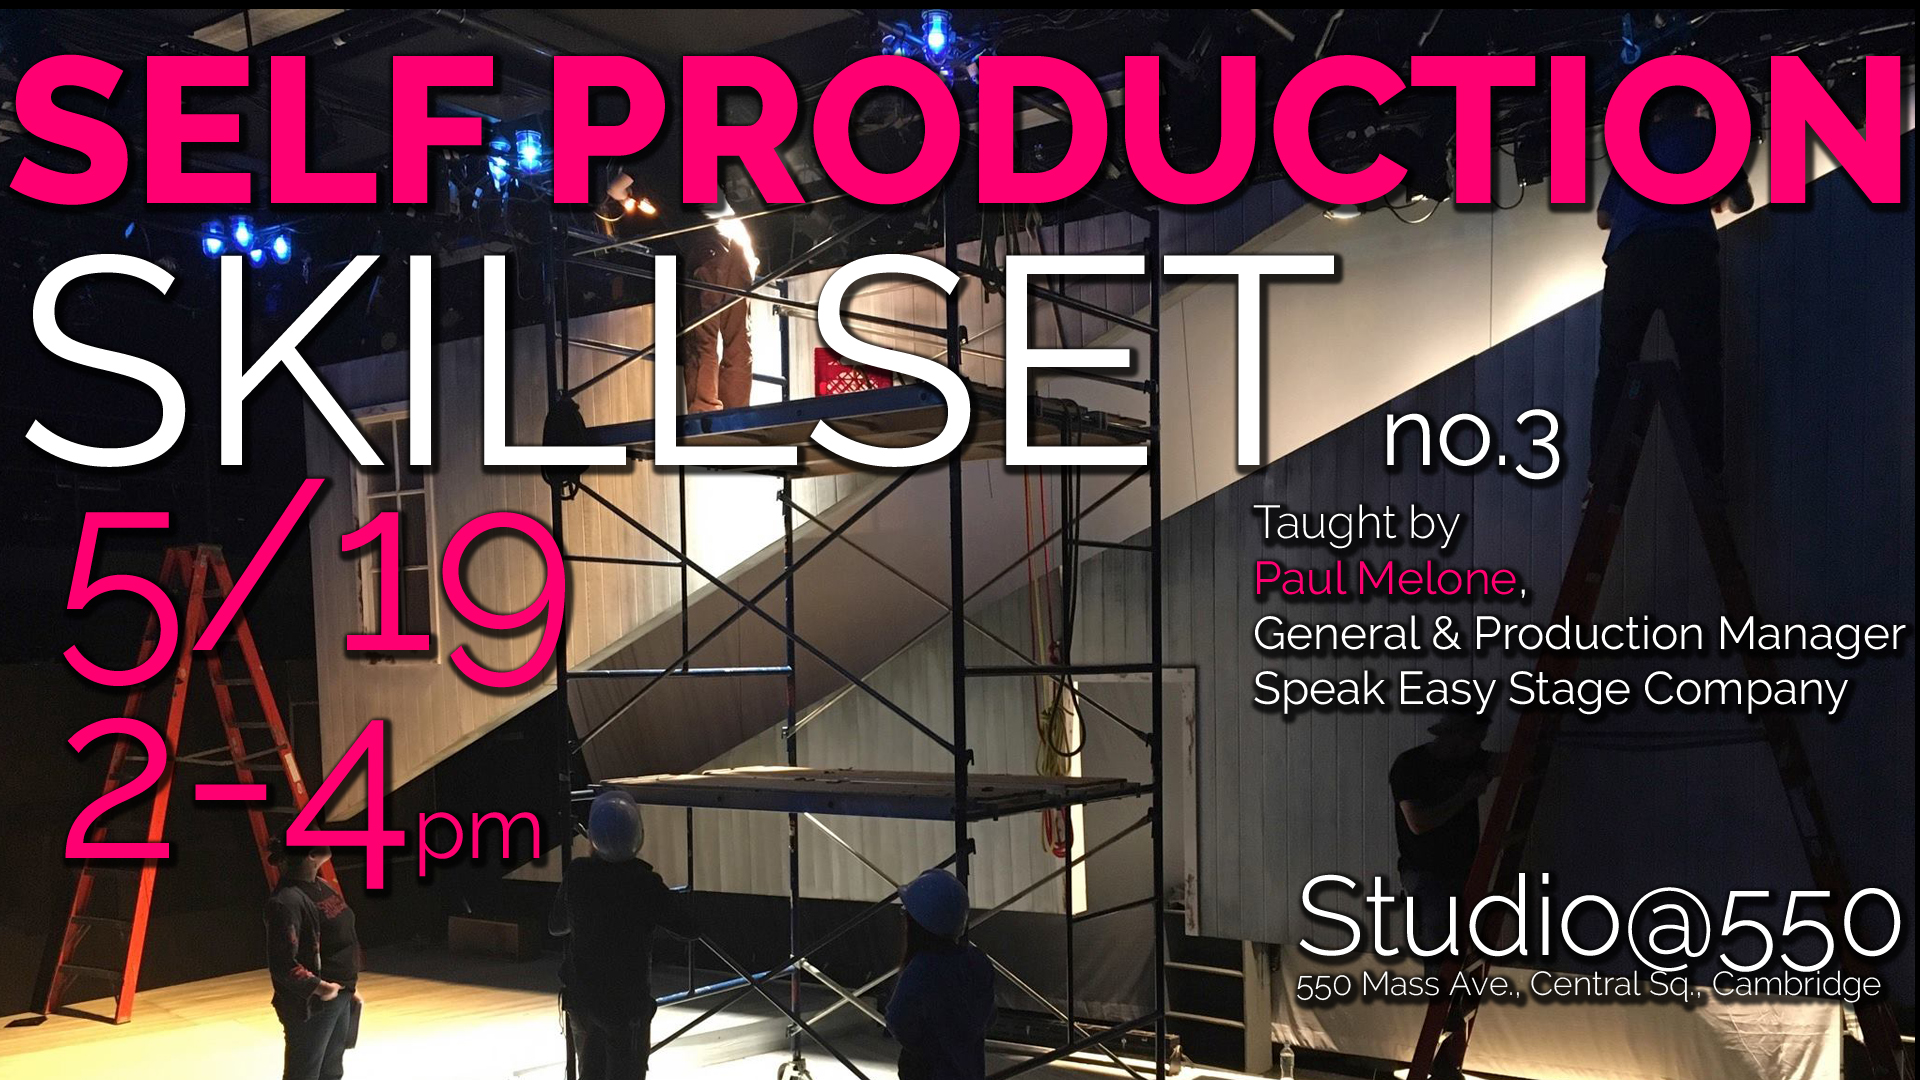 SELF-PRODUCTION SKILLSET with Paul Melone of SpeakEasy Stage